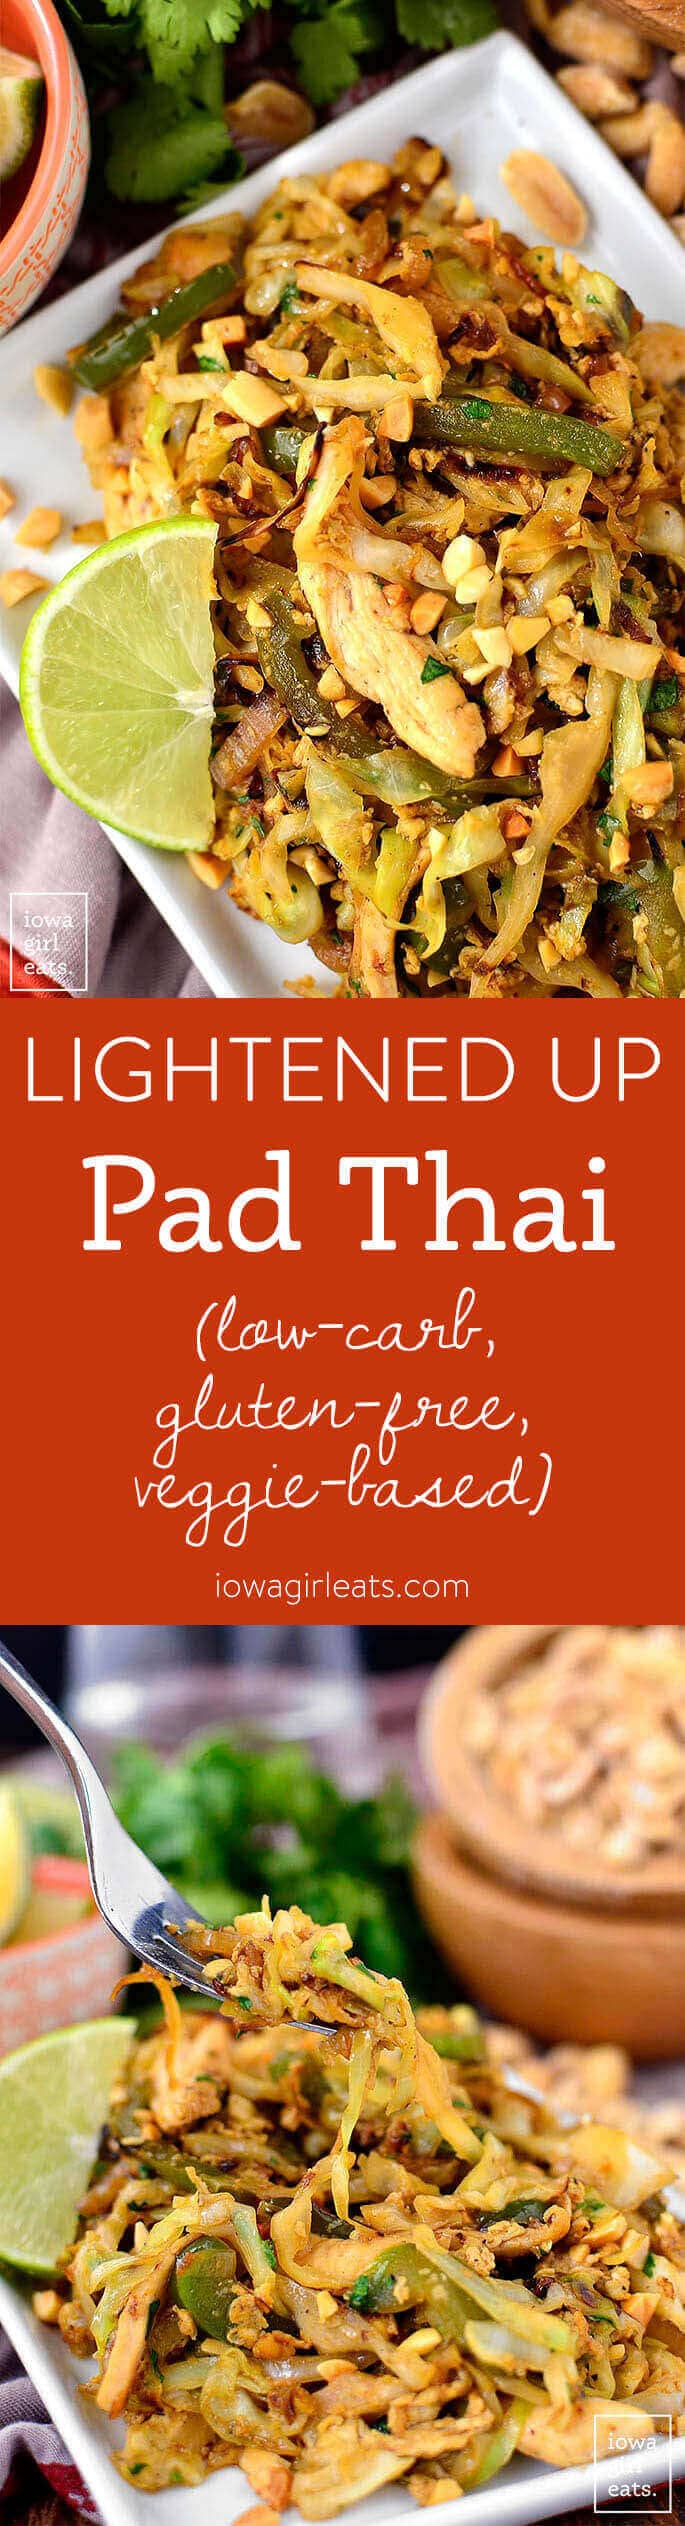 Lightened Up Pad Thai